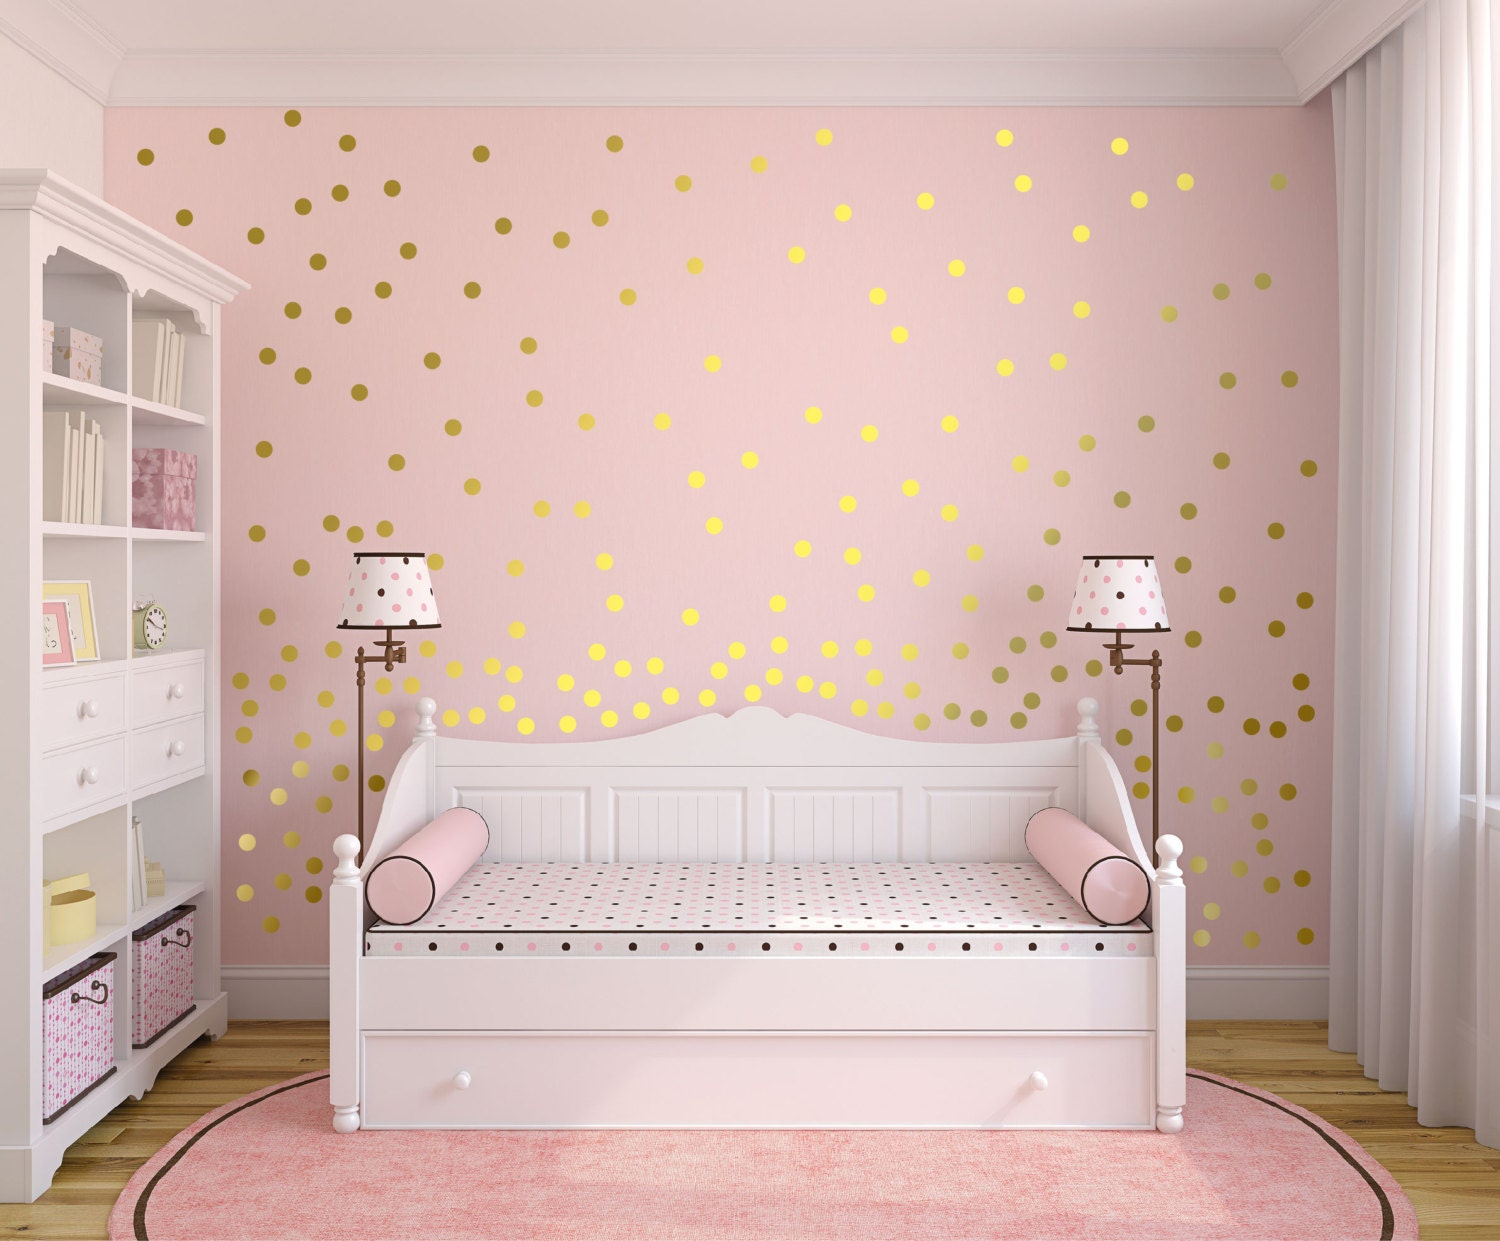 Metallic Gold Wall Decals Polka Dot Wall Sticker Decor   1 Inch,  1.5,2,2.5,3, 3.5, 4 Inches Circle Vinyl Wall Decal